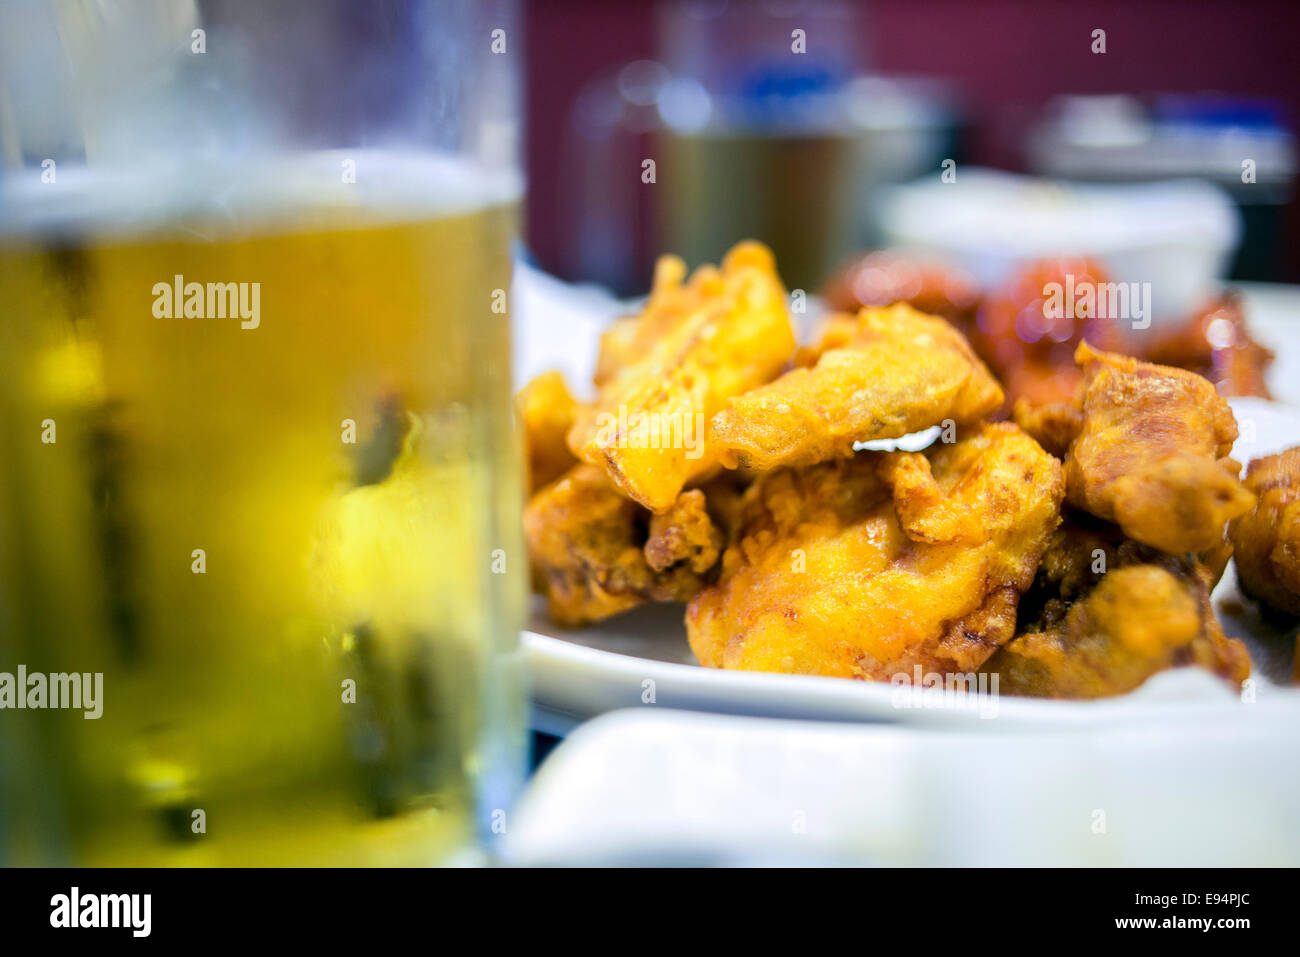 September 10, 2013, Seoul, South Korea - Korea - A typical meal of fried chicken accompanied with beer at Chung - Stock Image